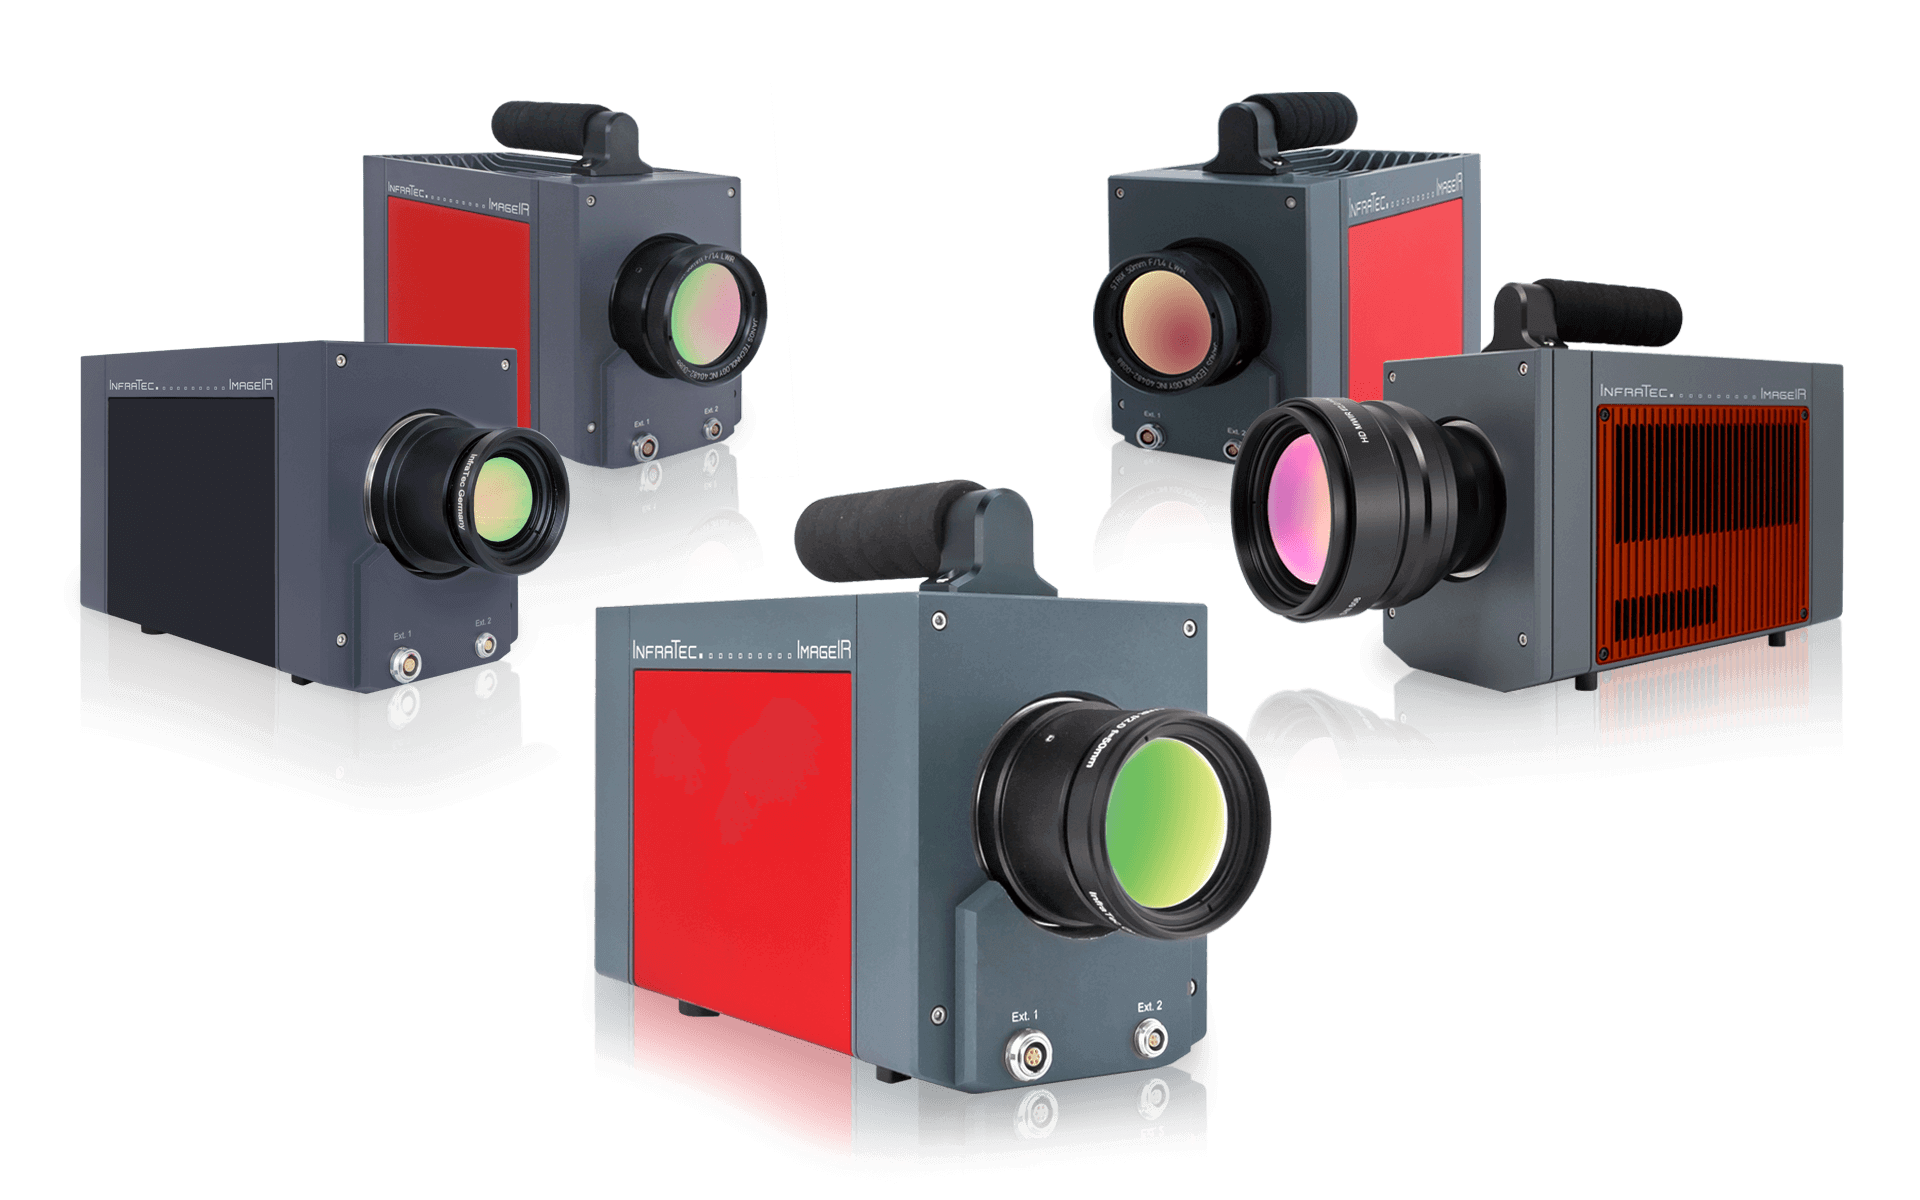 Models of the infrared camera series ImageIR from InfraTec